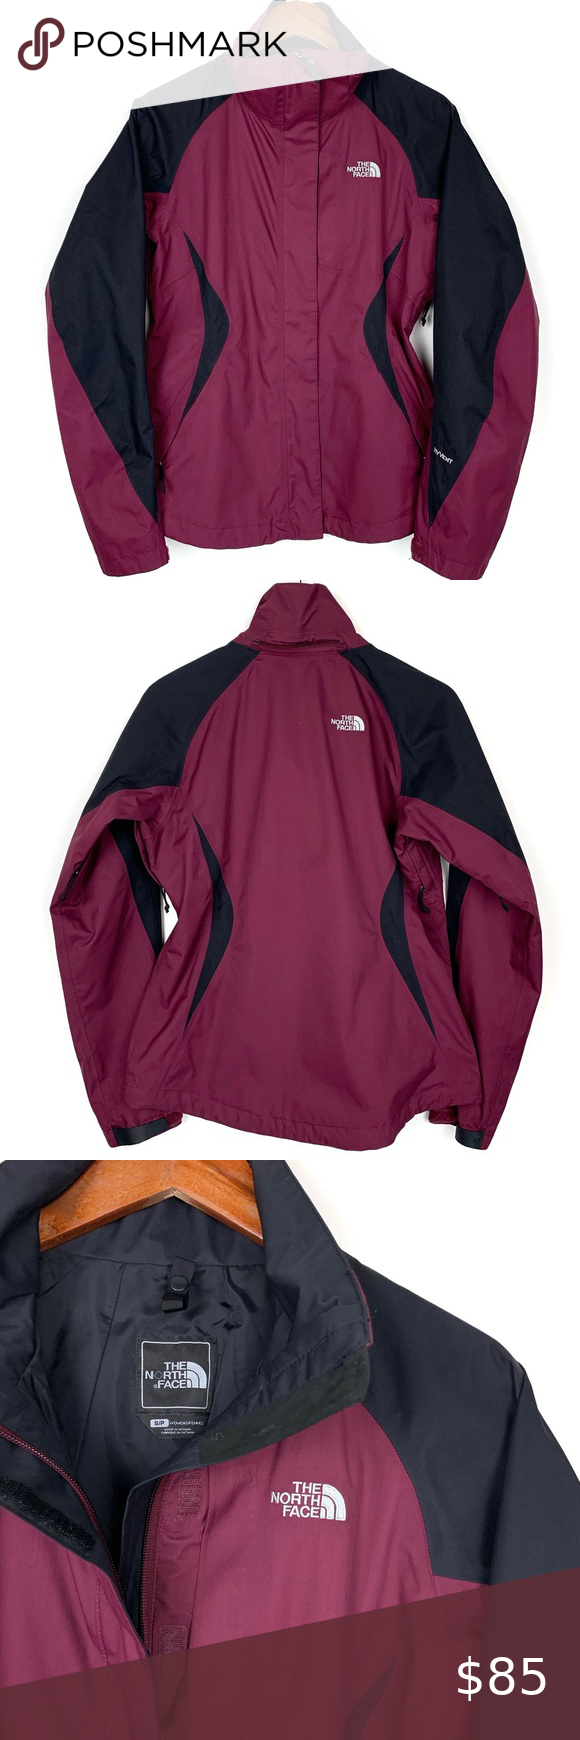 The North Face Kalzar Triclimate Hyvent Jacket Clothes Design North Face Jacket Jackets [ 1740 x 580 Pixel ]